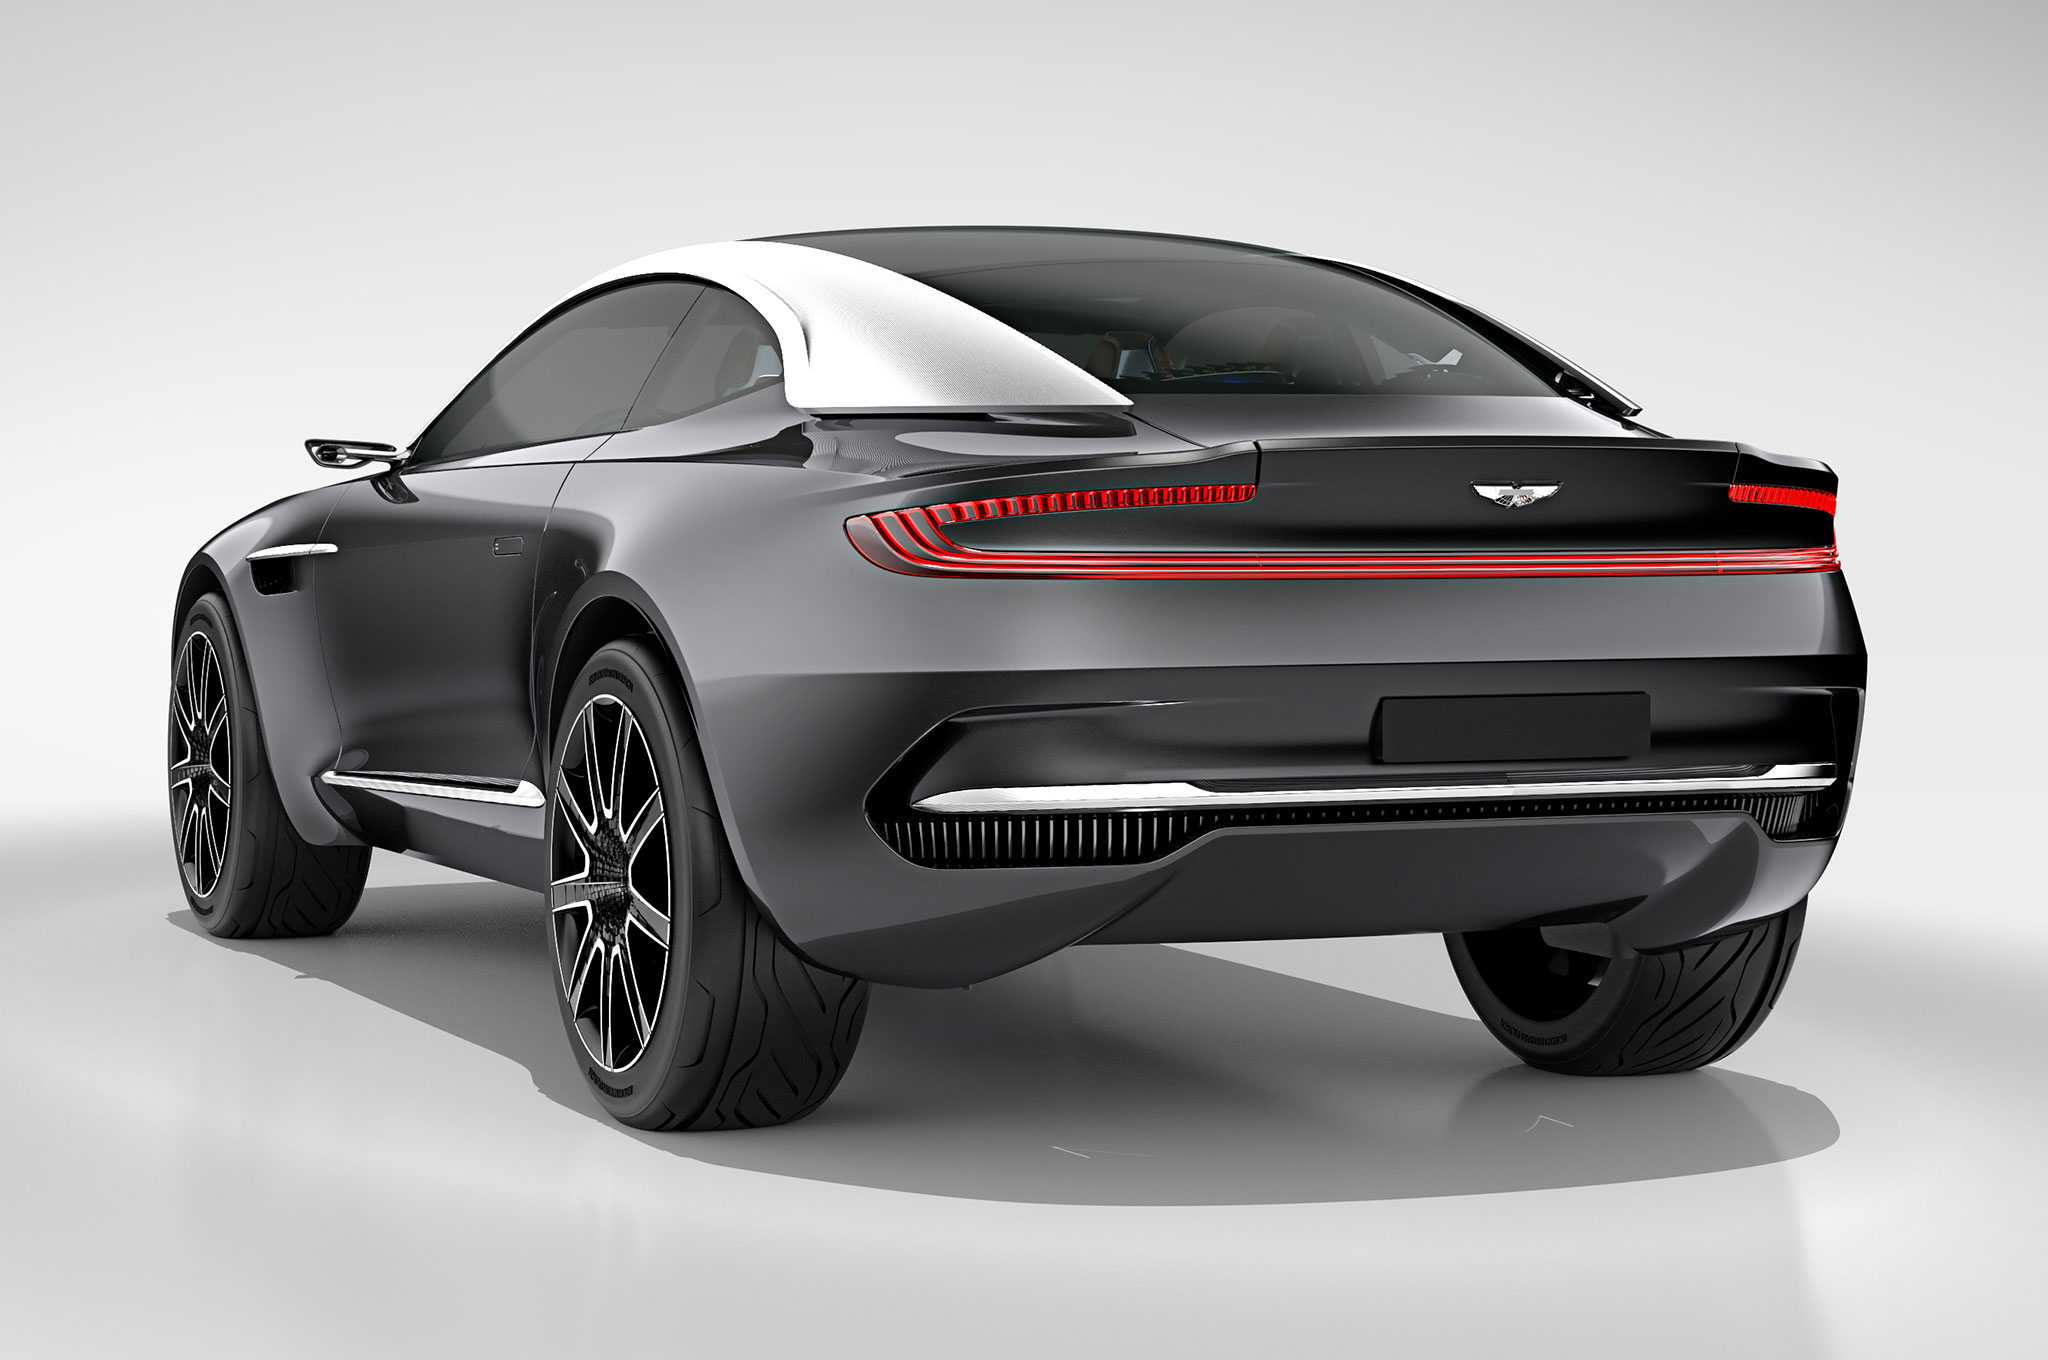 aston martin confirms 305 million investment to build dbx crossover. Black Bedroom Furniture Sets. Home Design Ideas